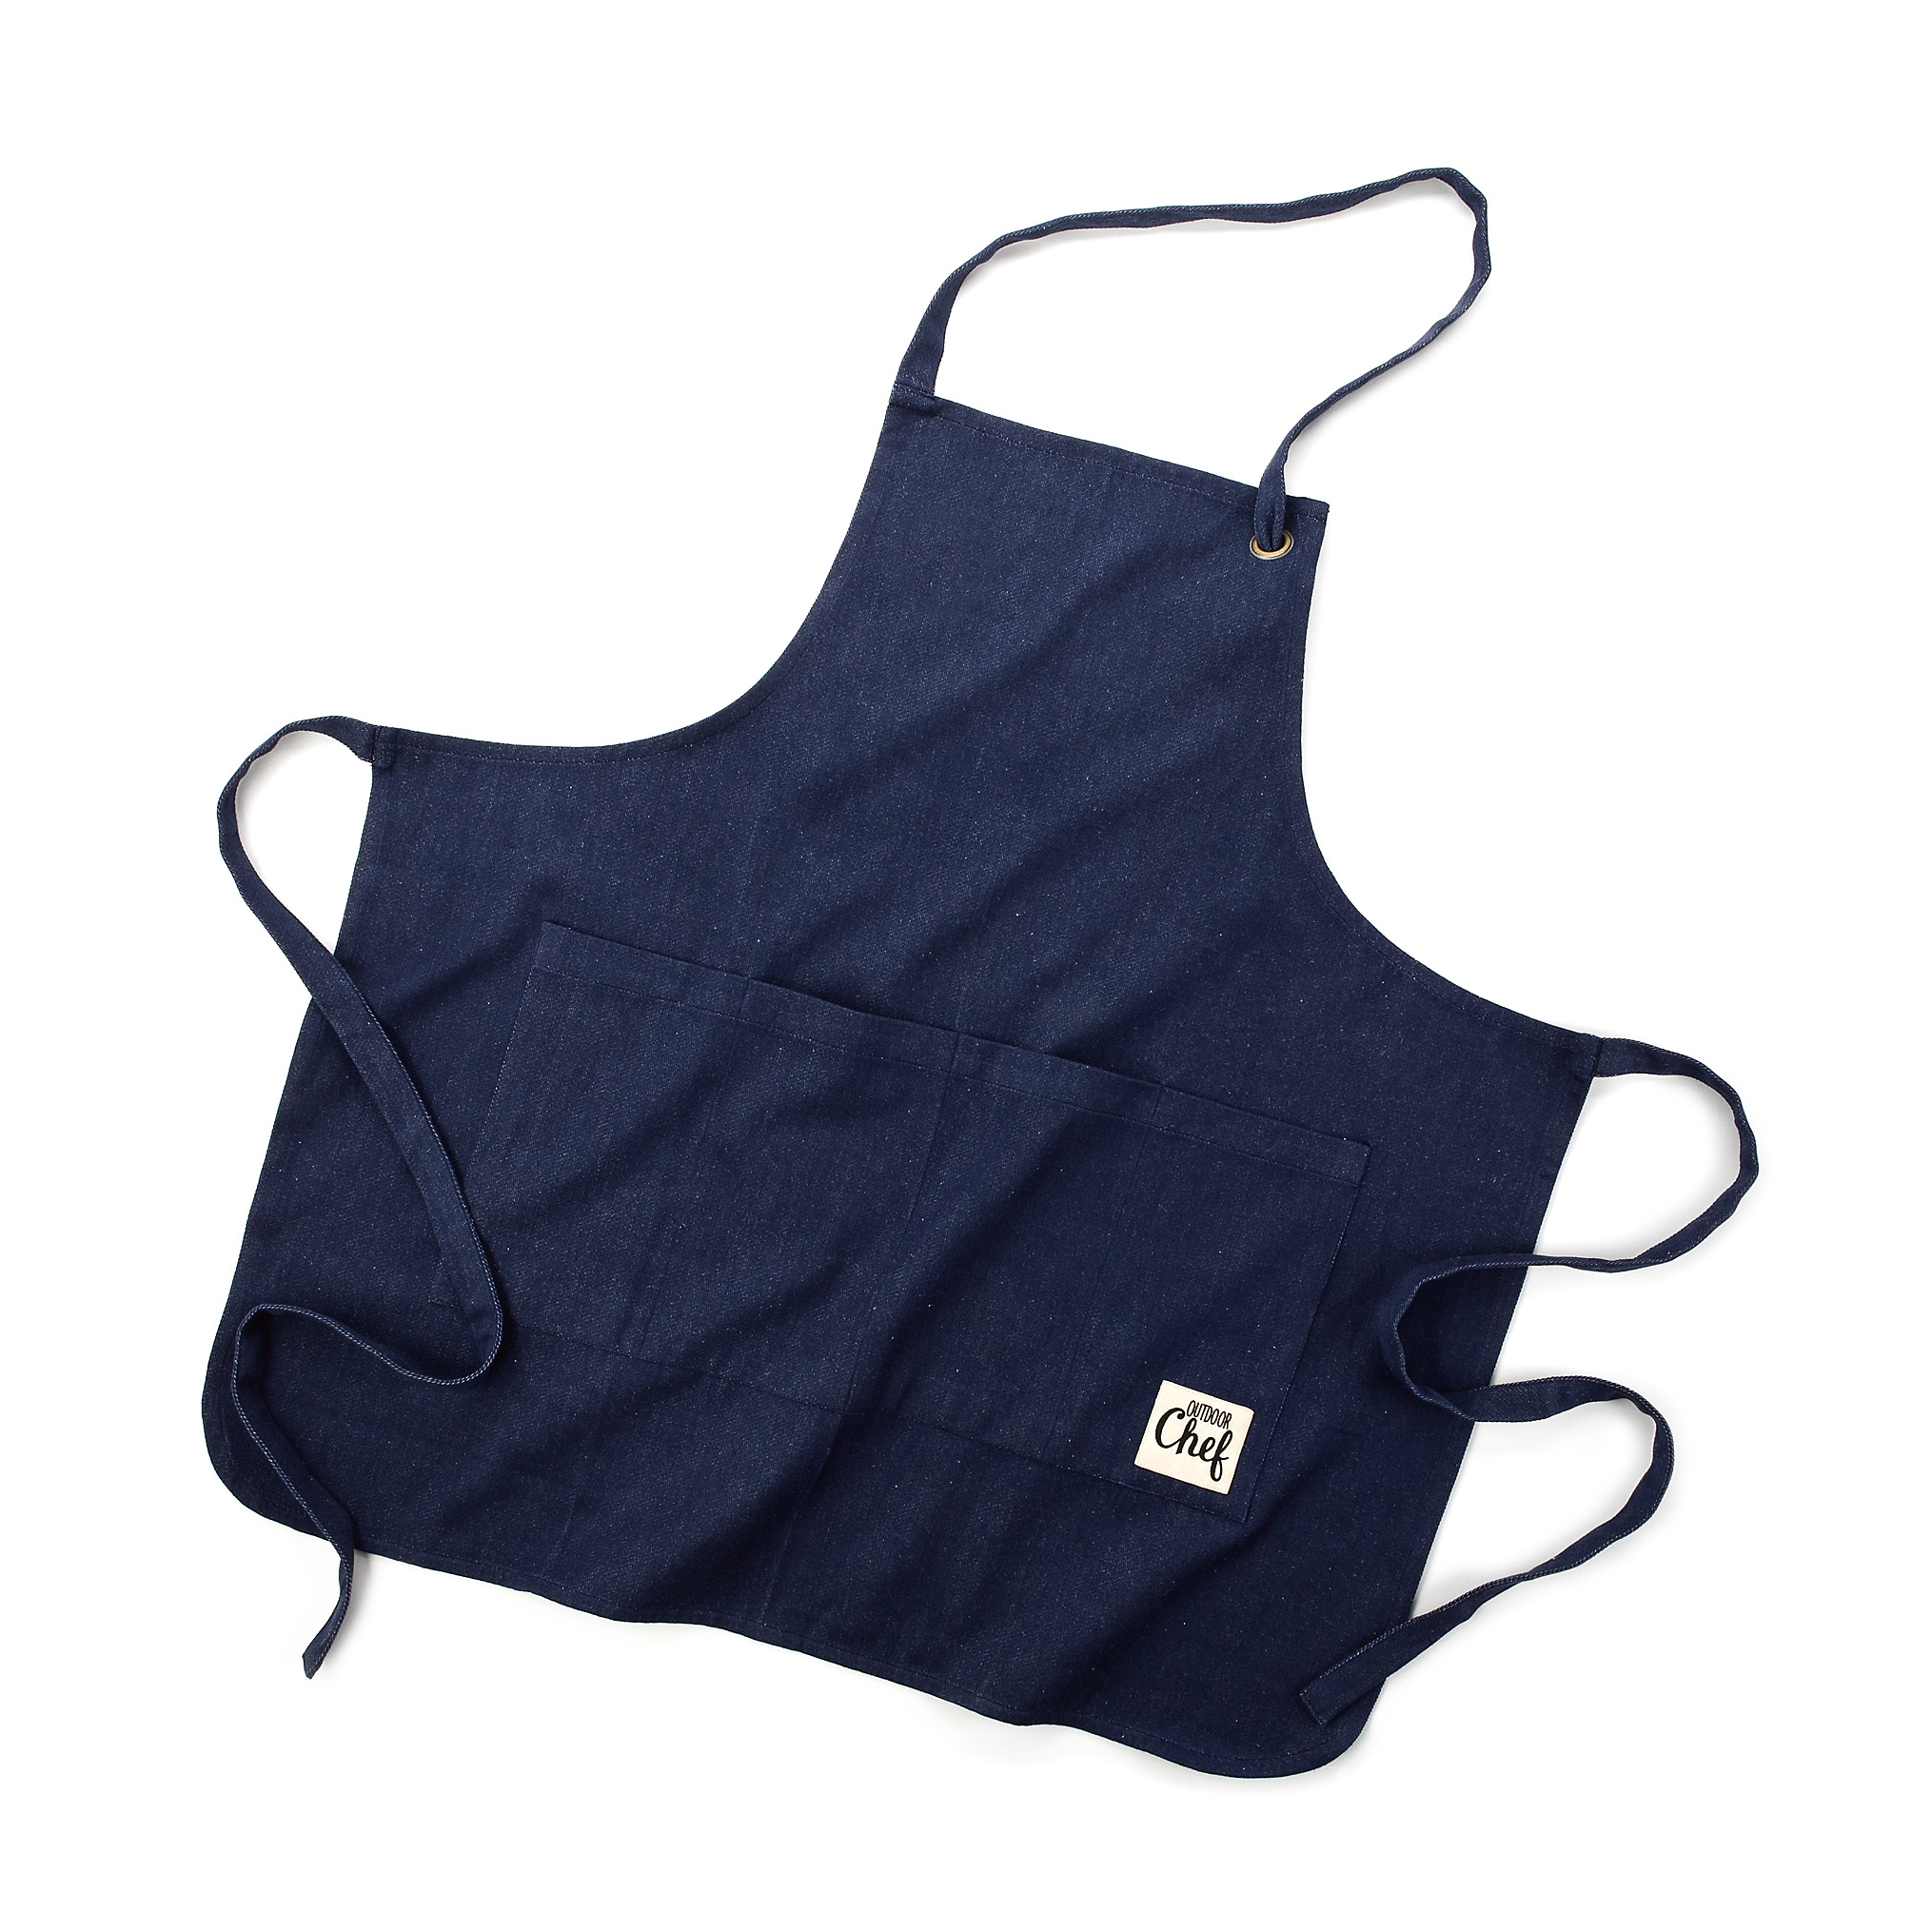 Assorted BBQ Gear Outdoor Chef Apron - $19.95